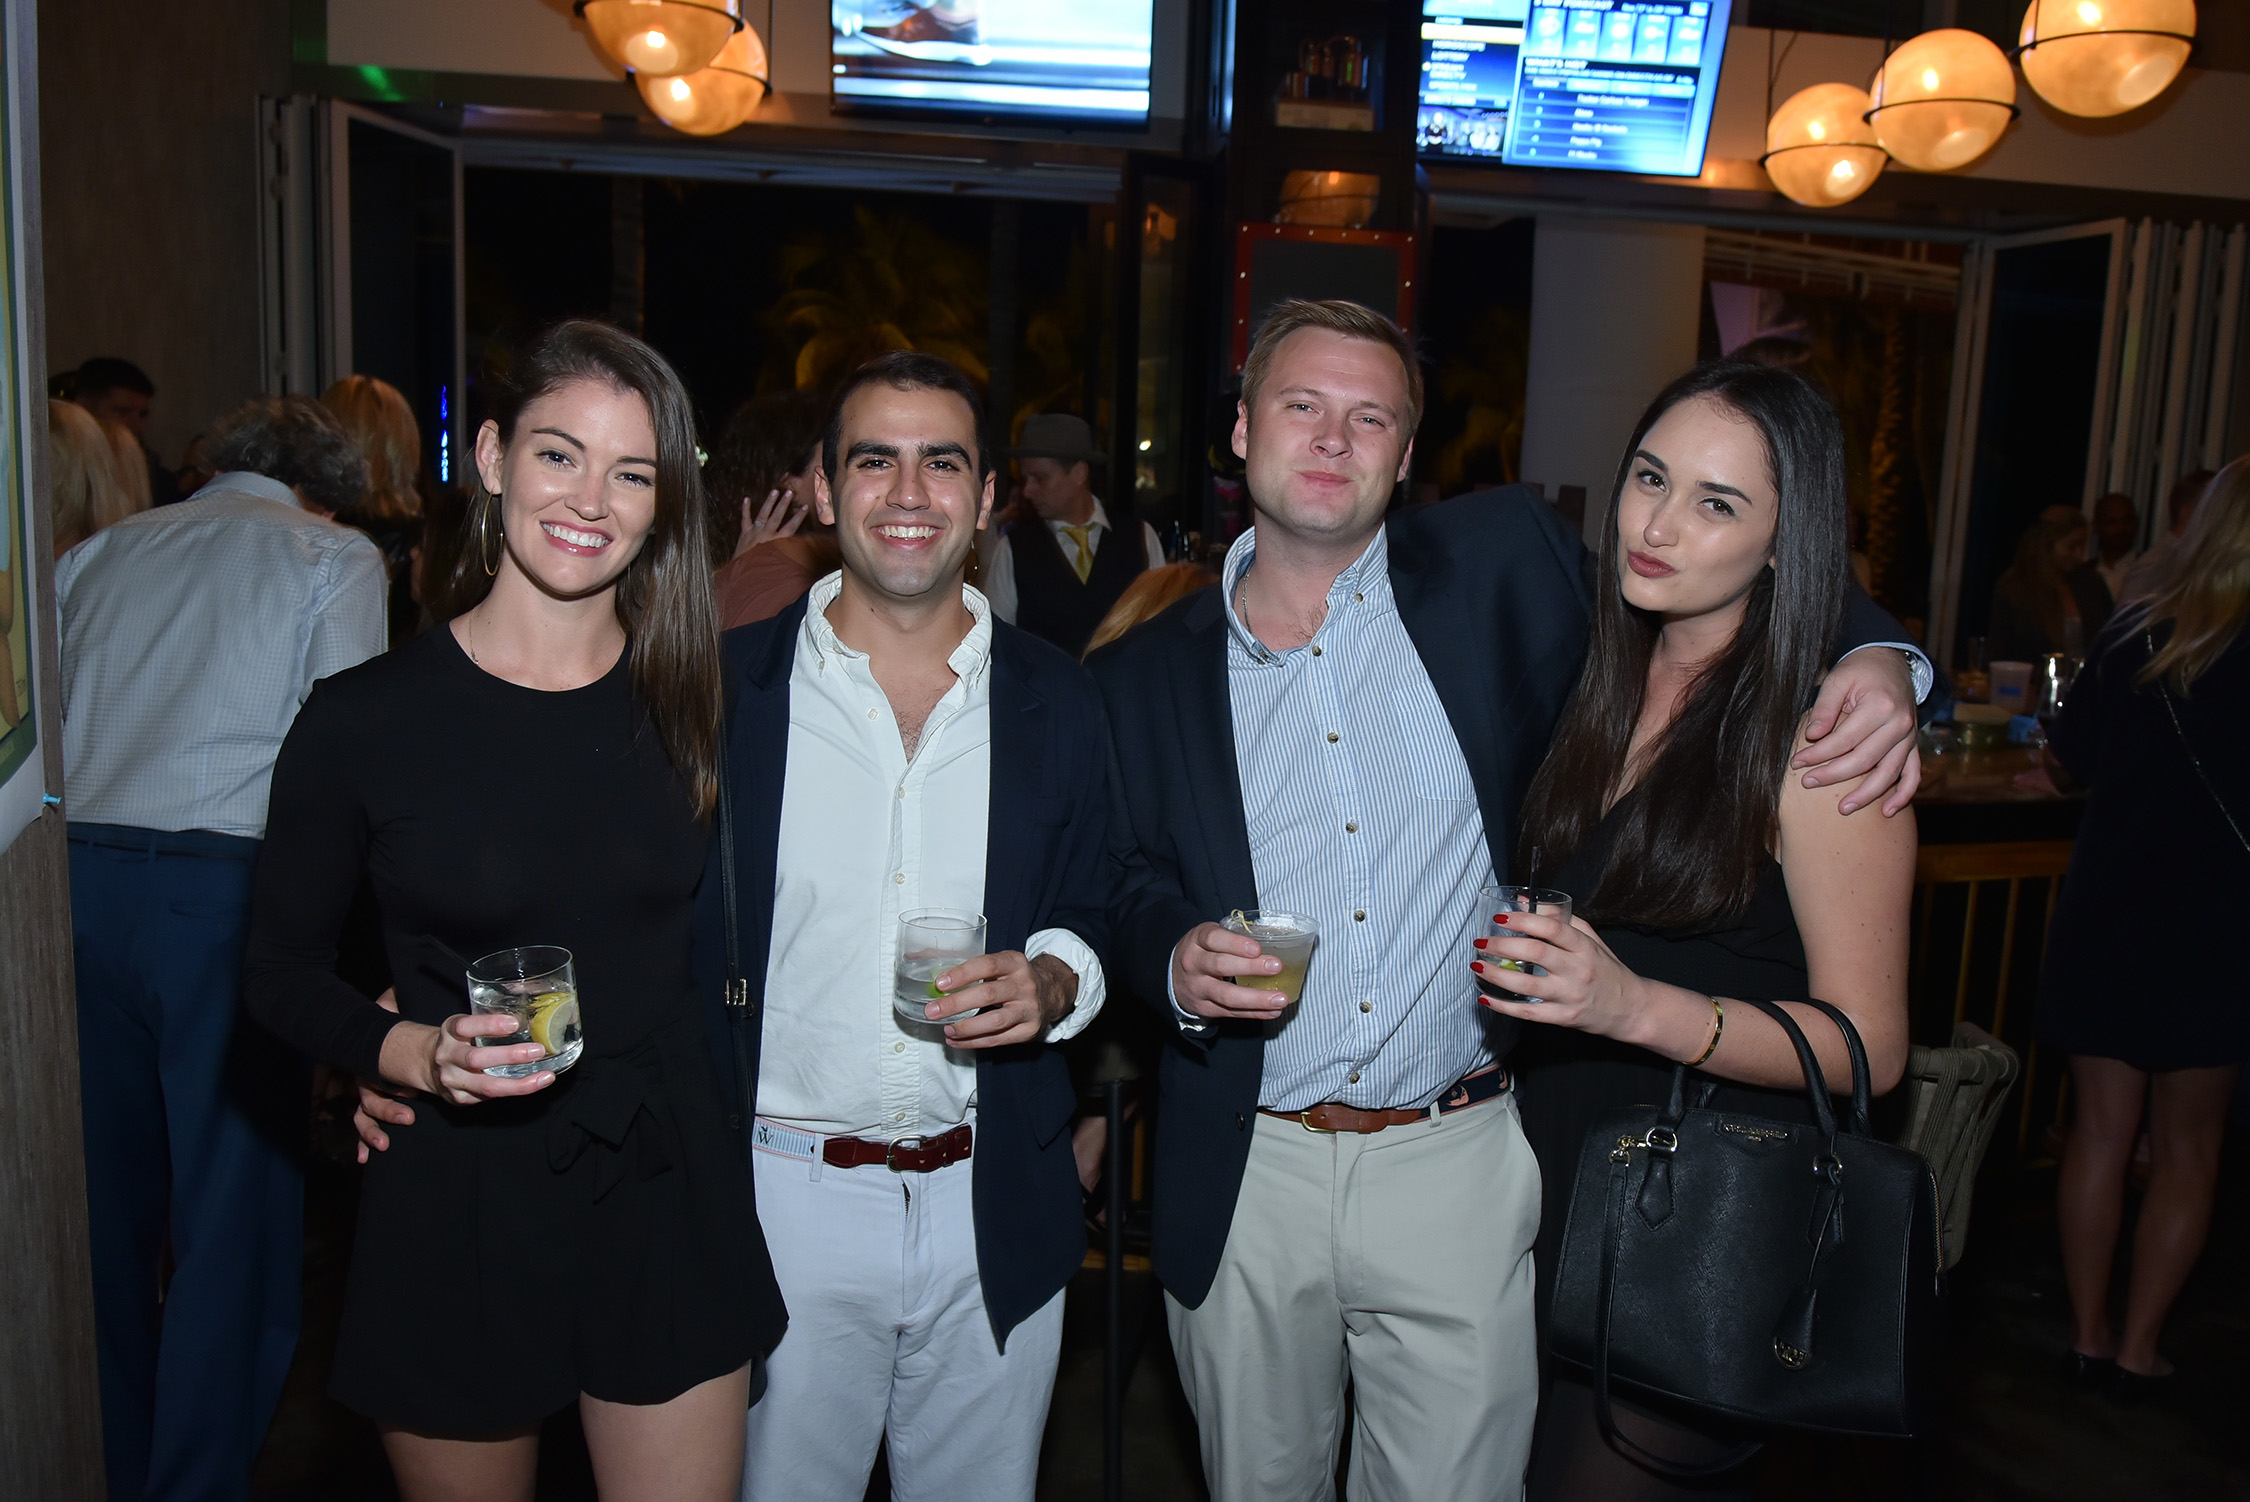 Ritz-Carlton-Burlock-Coast-Repeal-Party-Darryl-Nobles-The-Seen-Fort-Lauderdale-Venice-Magazine